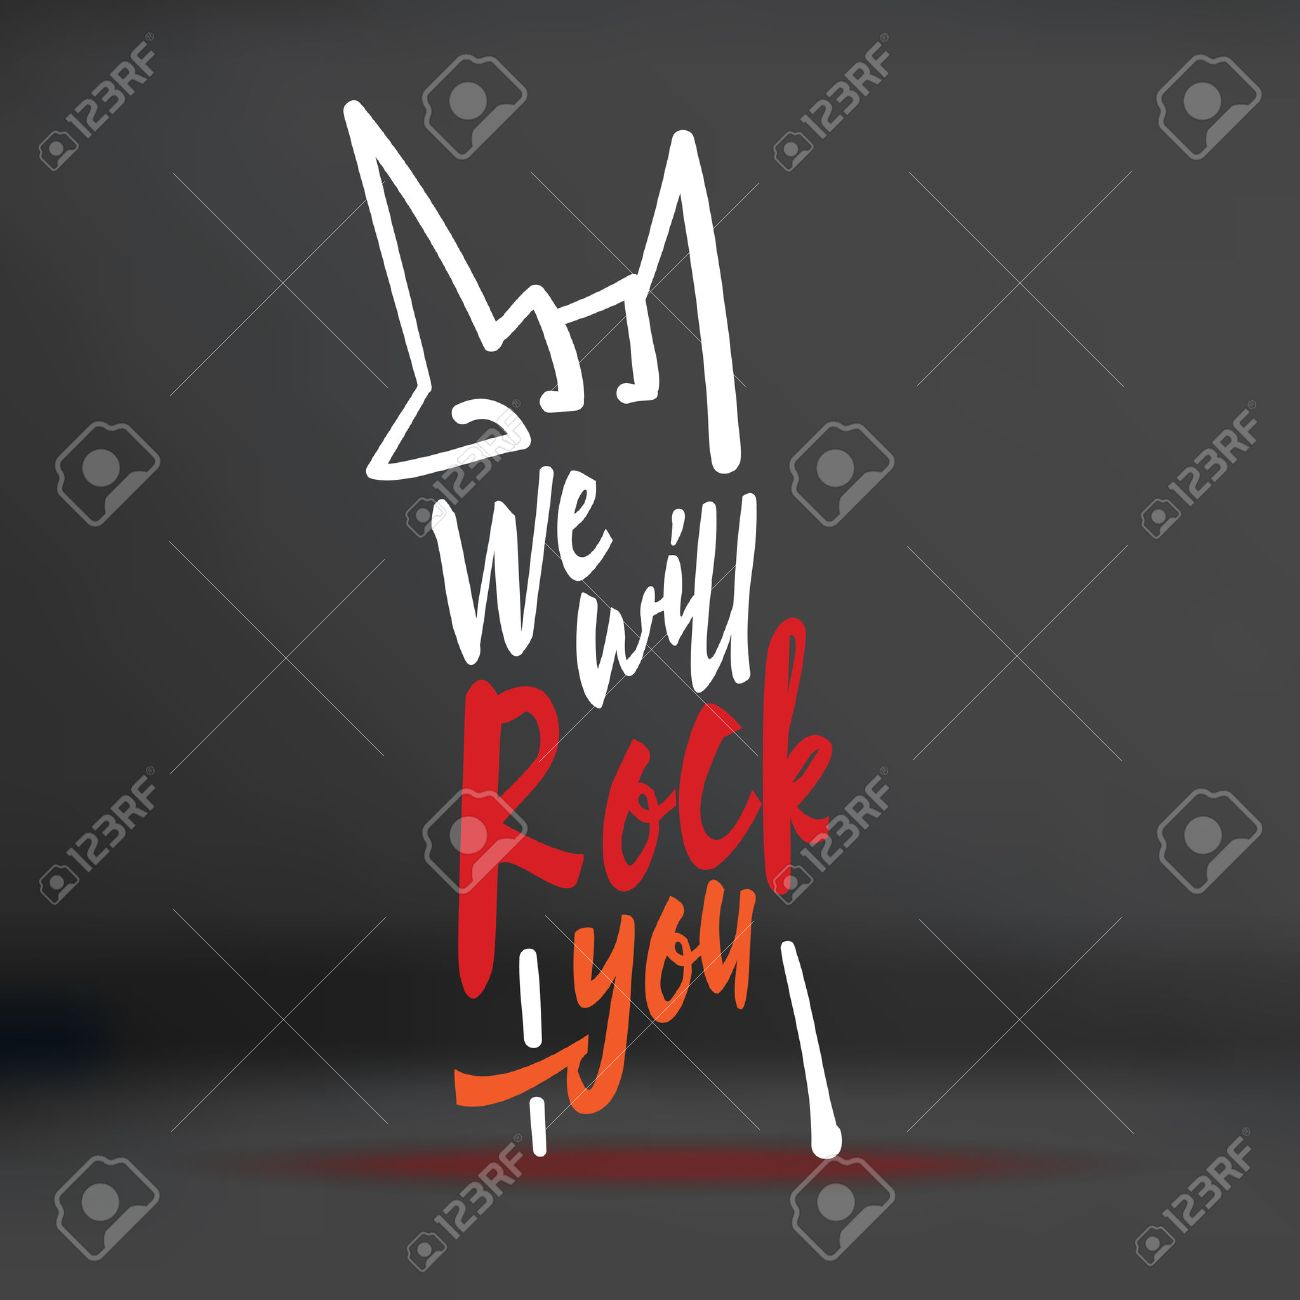 Vector : We will rock you word with hand doodle shape on black studio background,Music concept. - 40790407